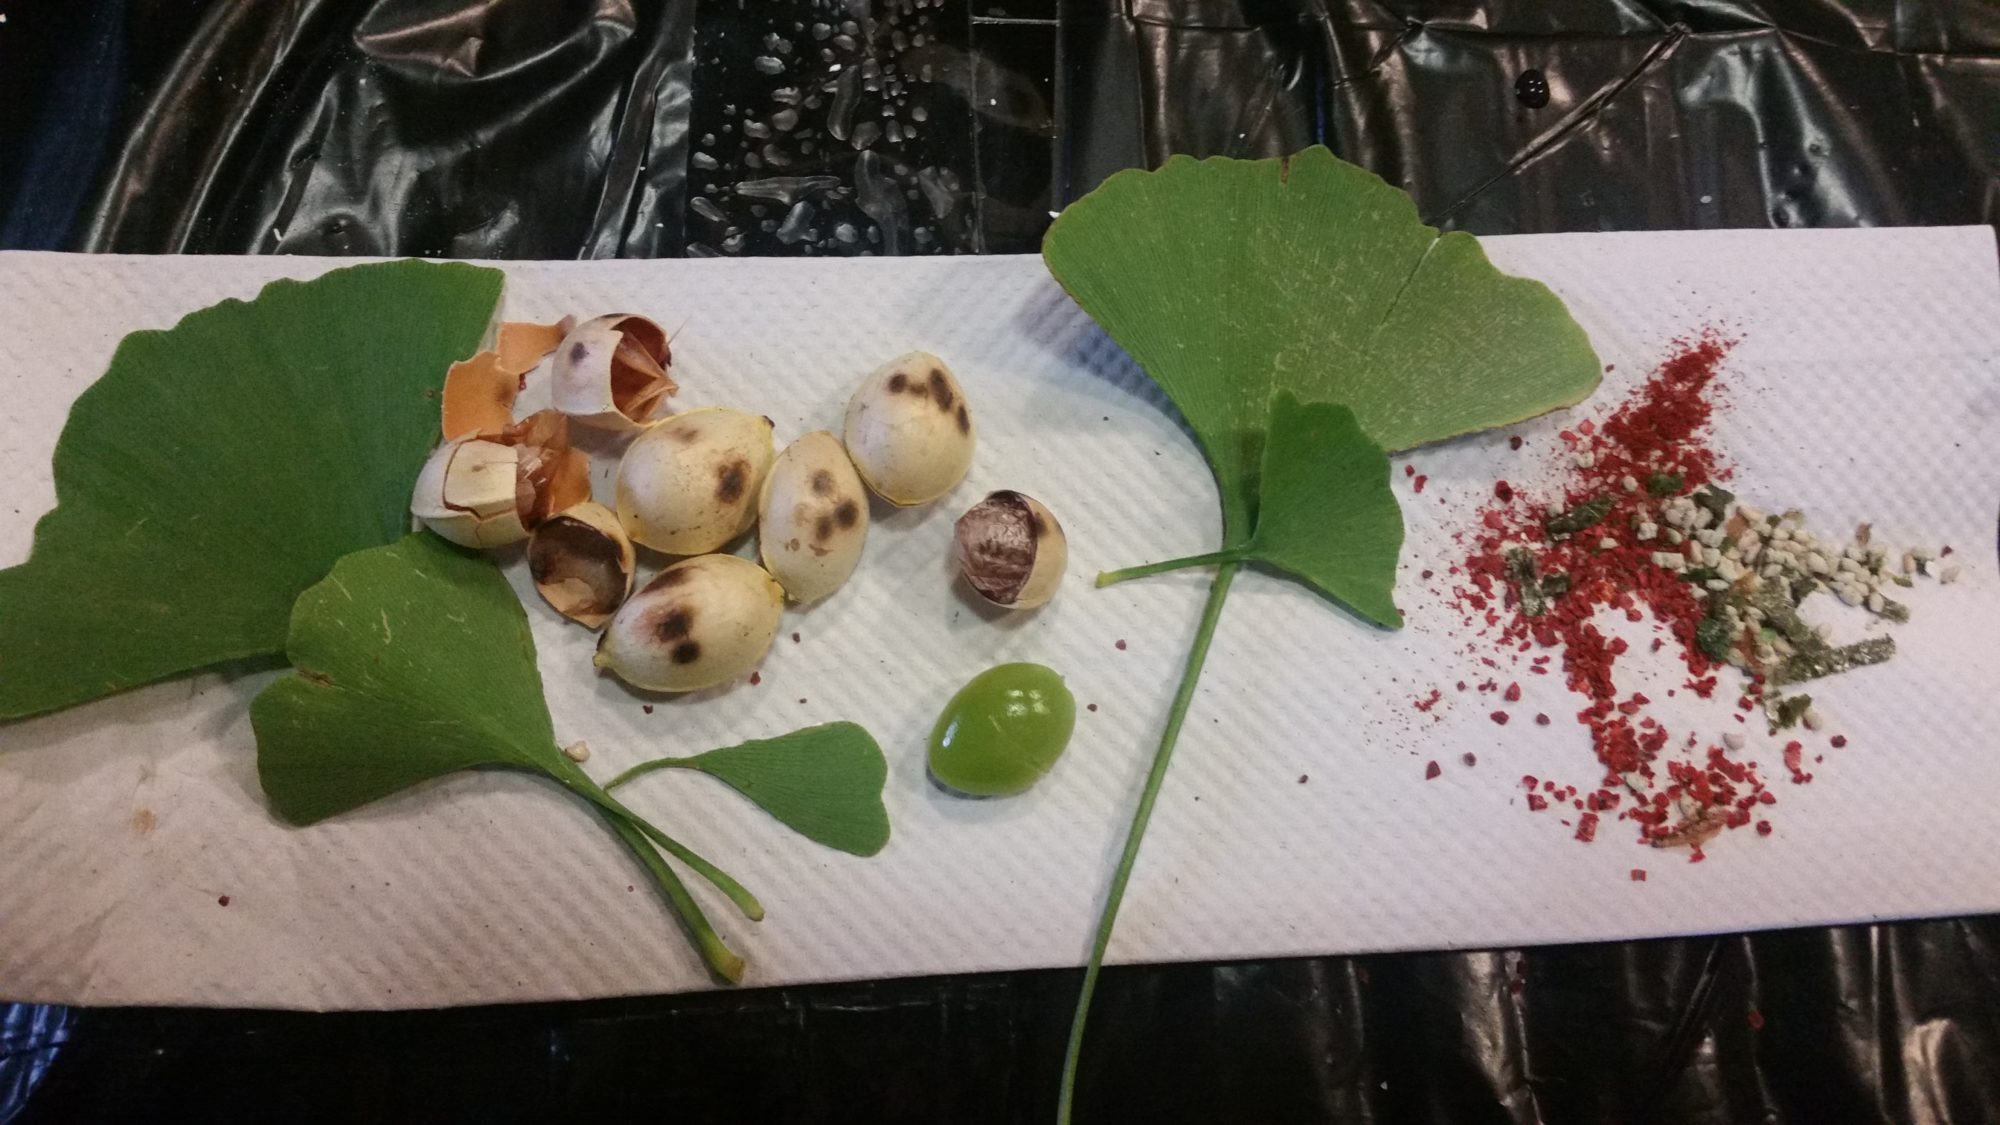 A paper towel containing a spread of Ginkgo leaves and nuts, with additional spices on display